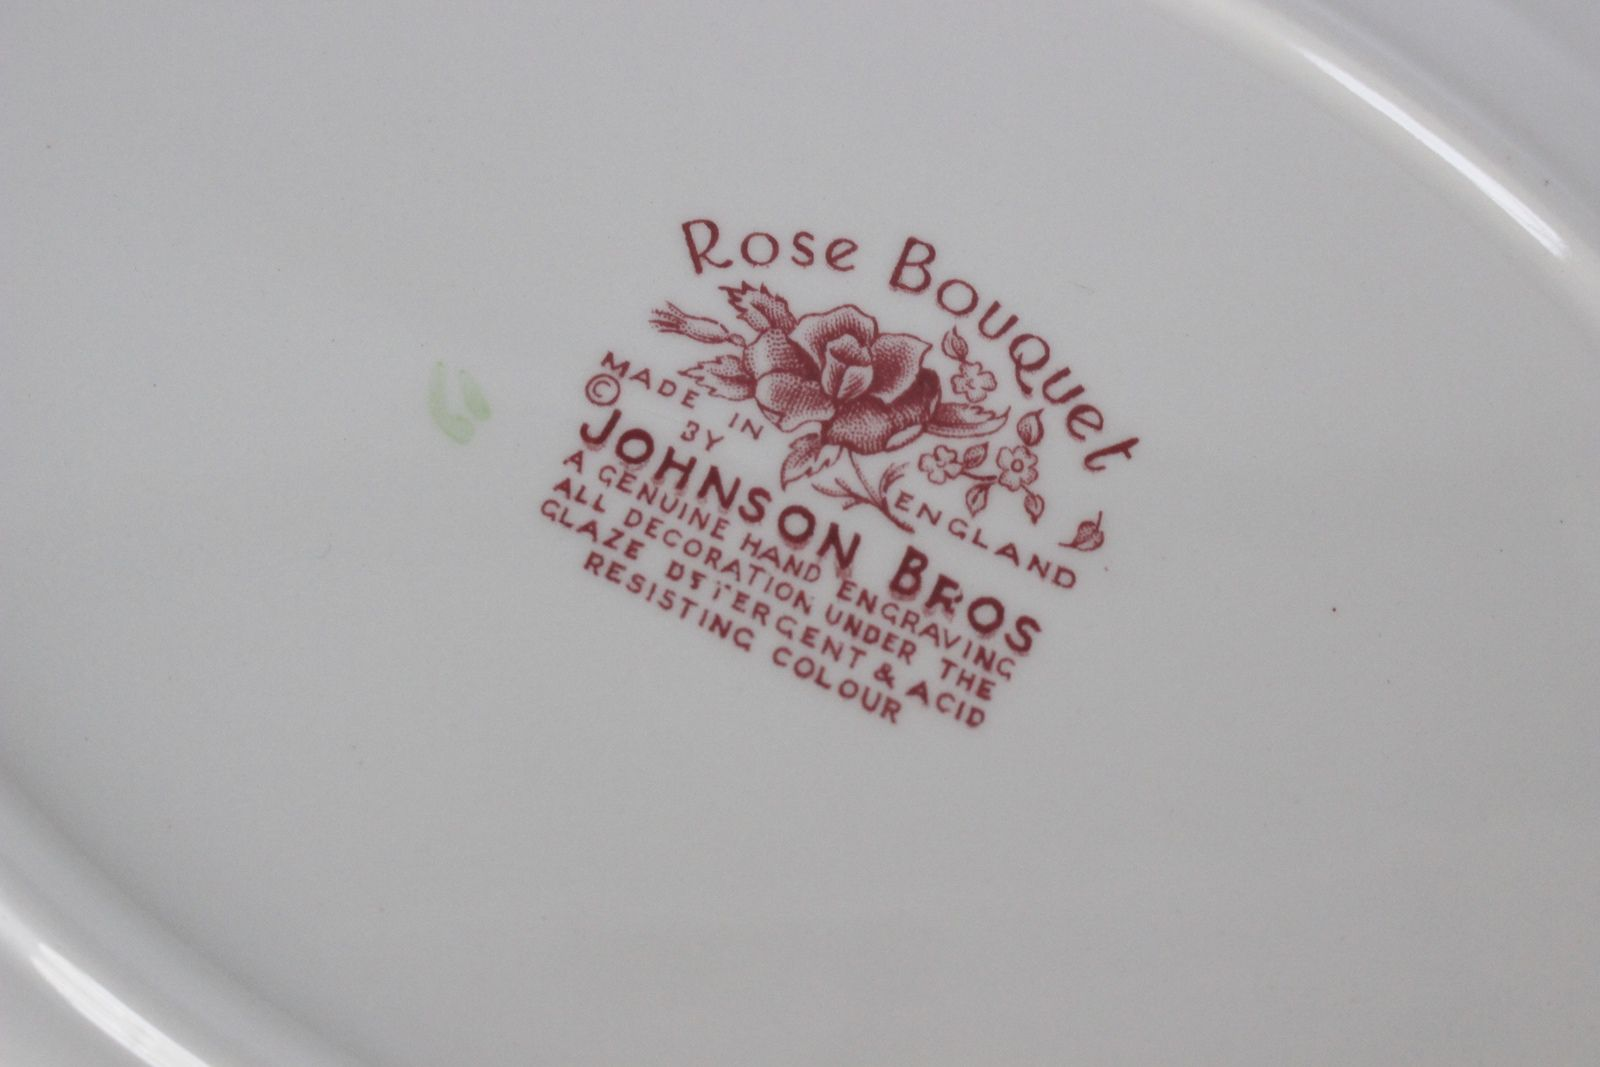 Plat Rose Bouquet Johnson Bros Made in England